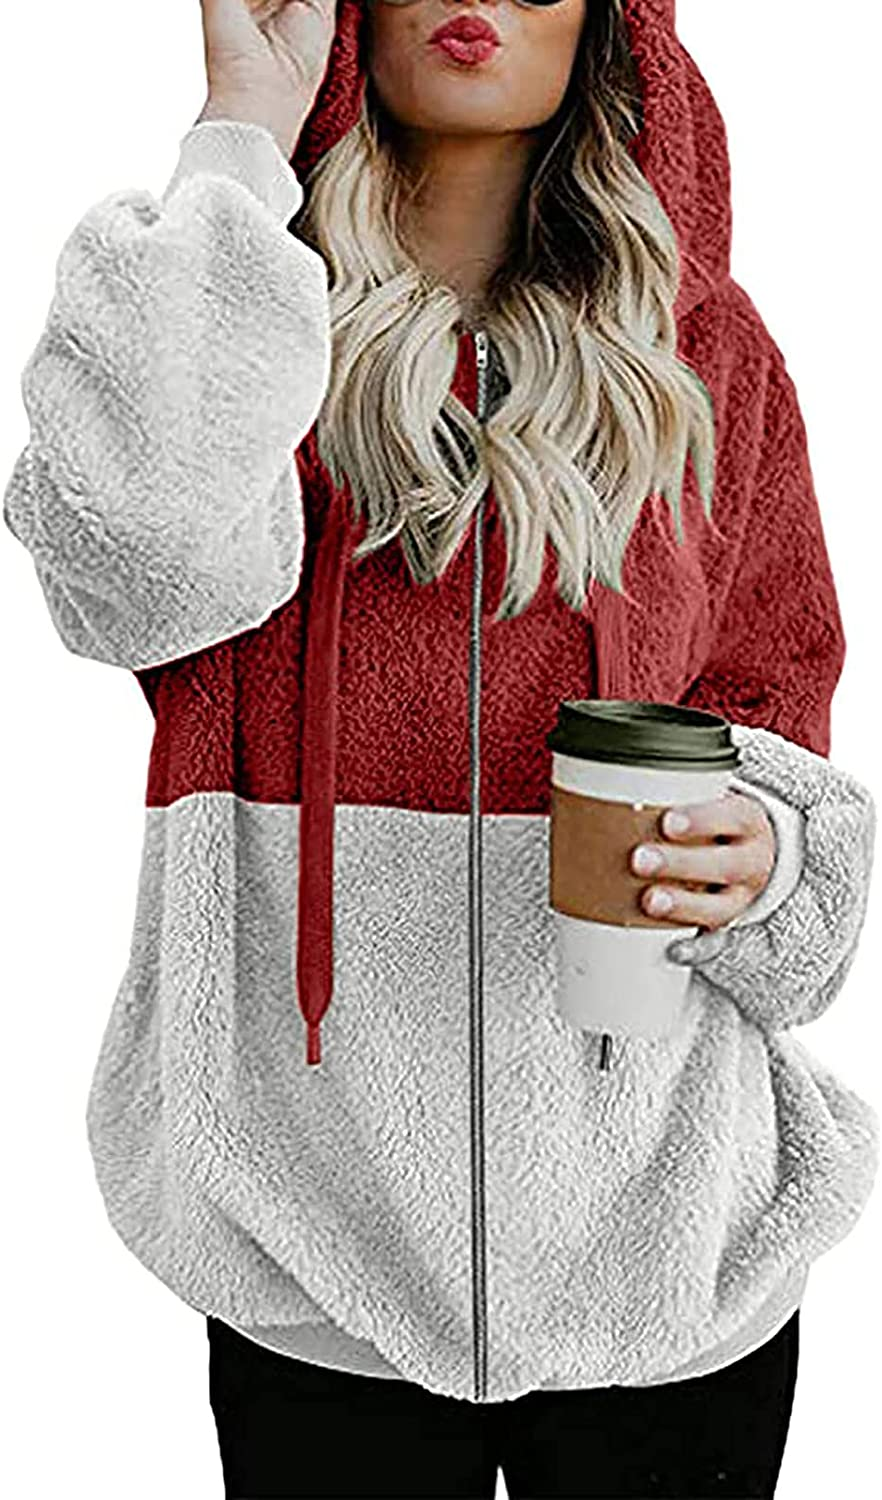 INESVER Translated Womens Warm Coat Oversize Time sale Zip Jacket Up Lo Sherpa Winter